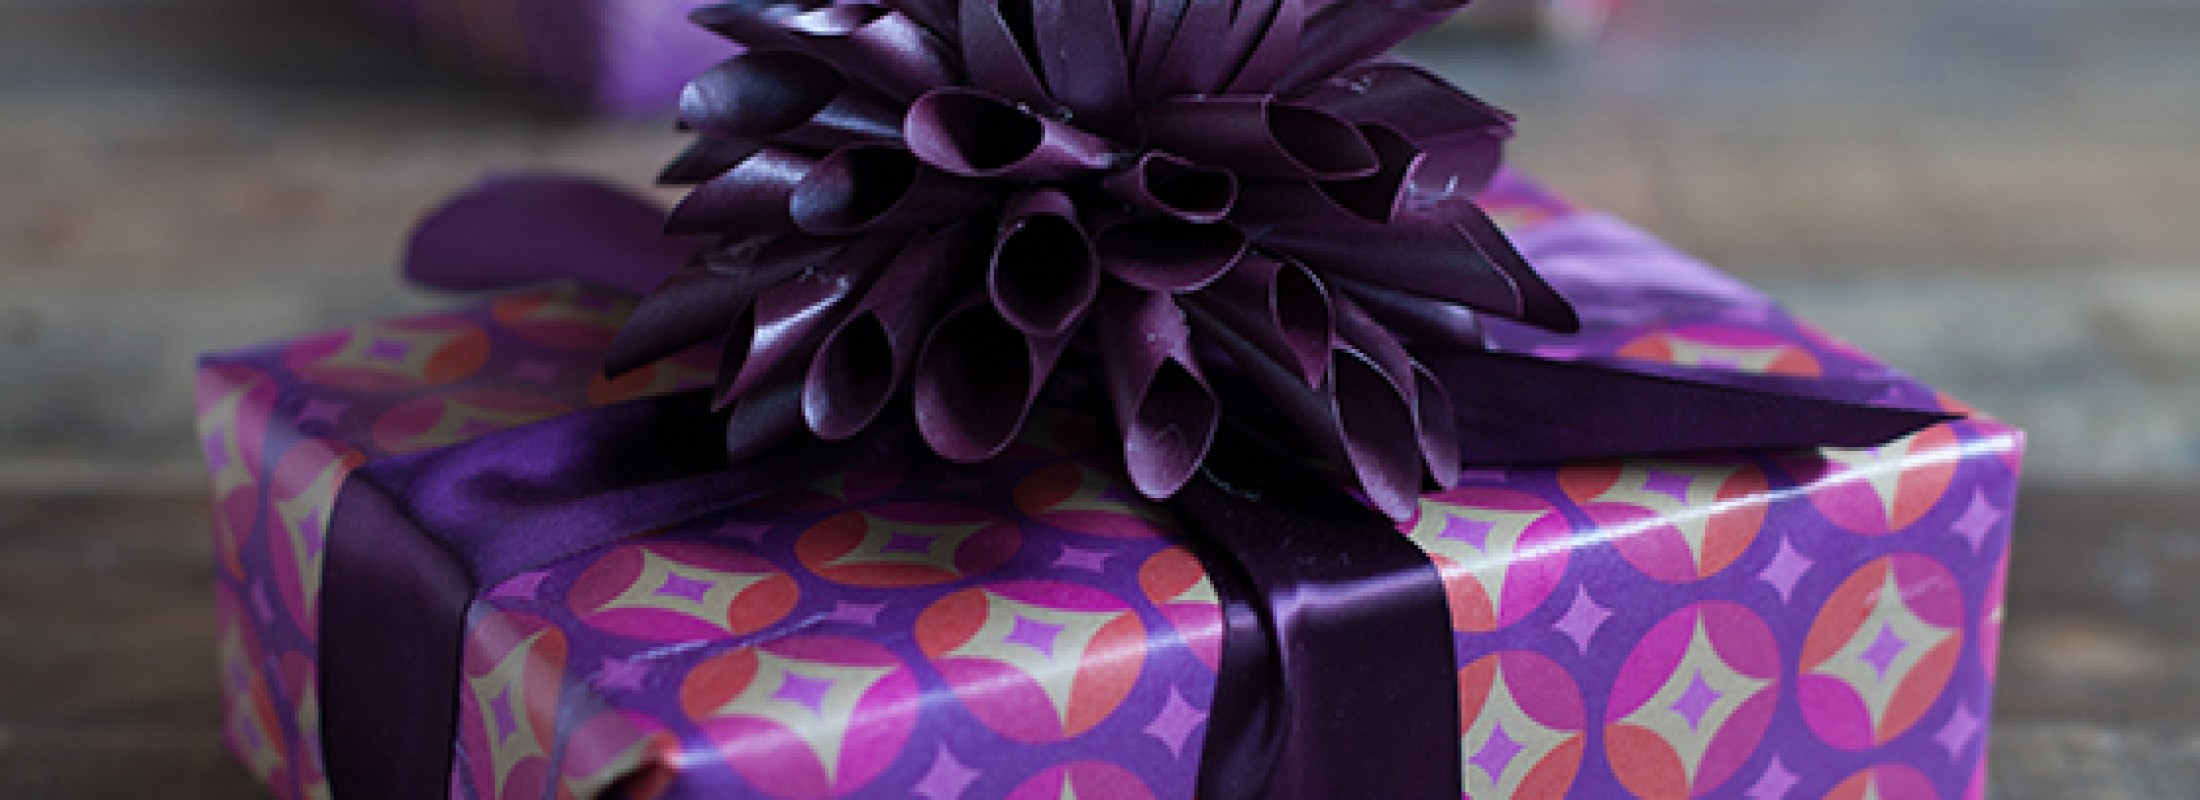 glamorous holiday gift packaging in pretty purple and fuchsia